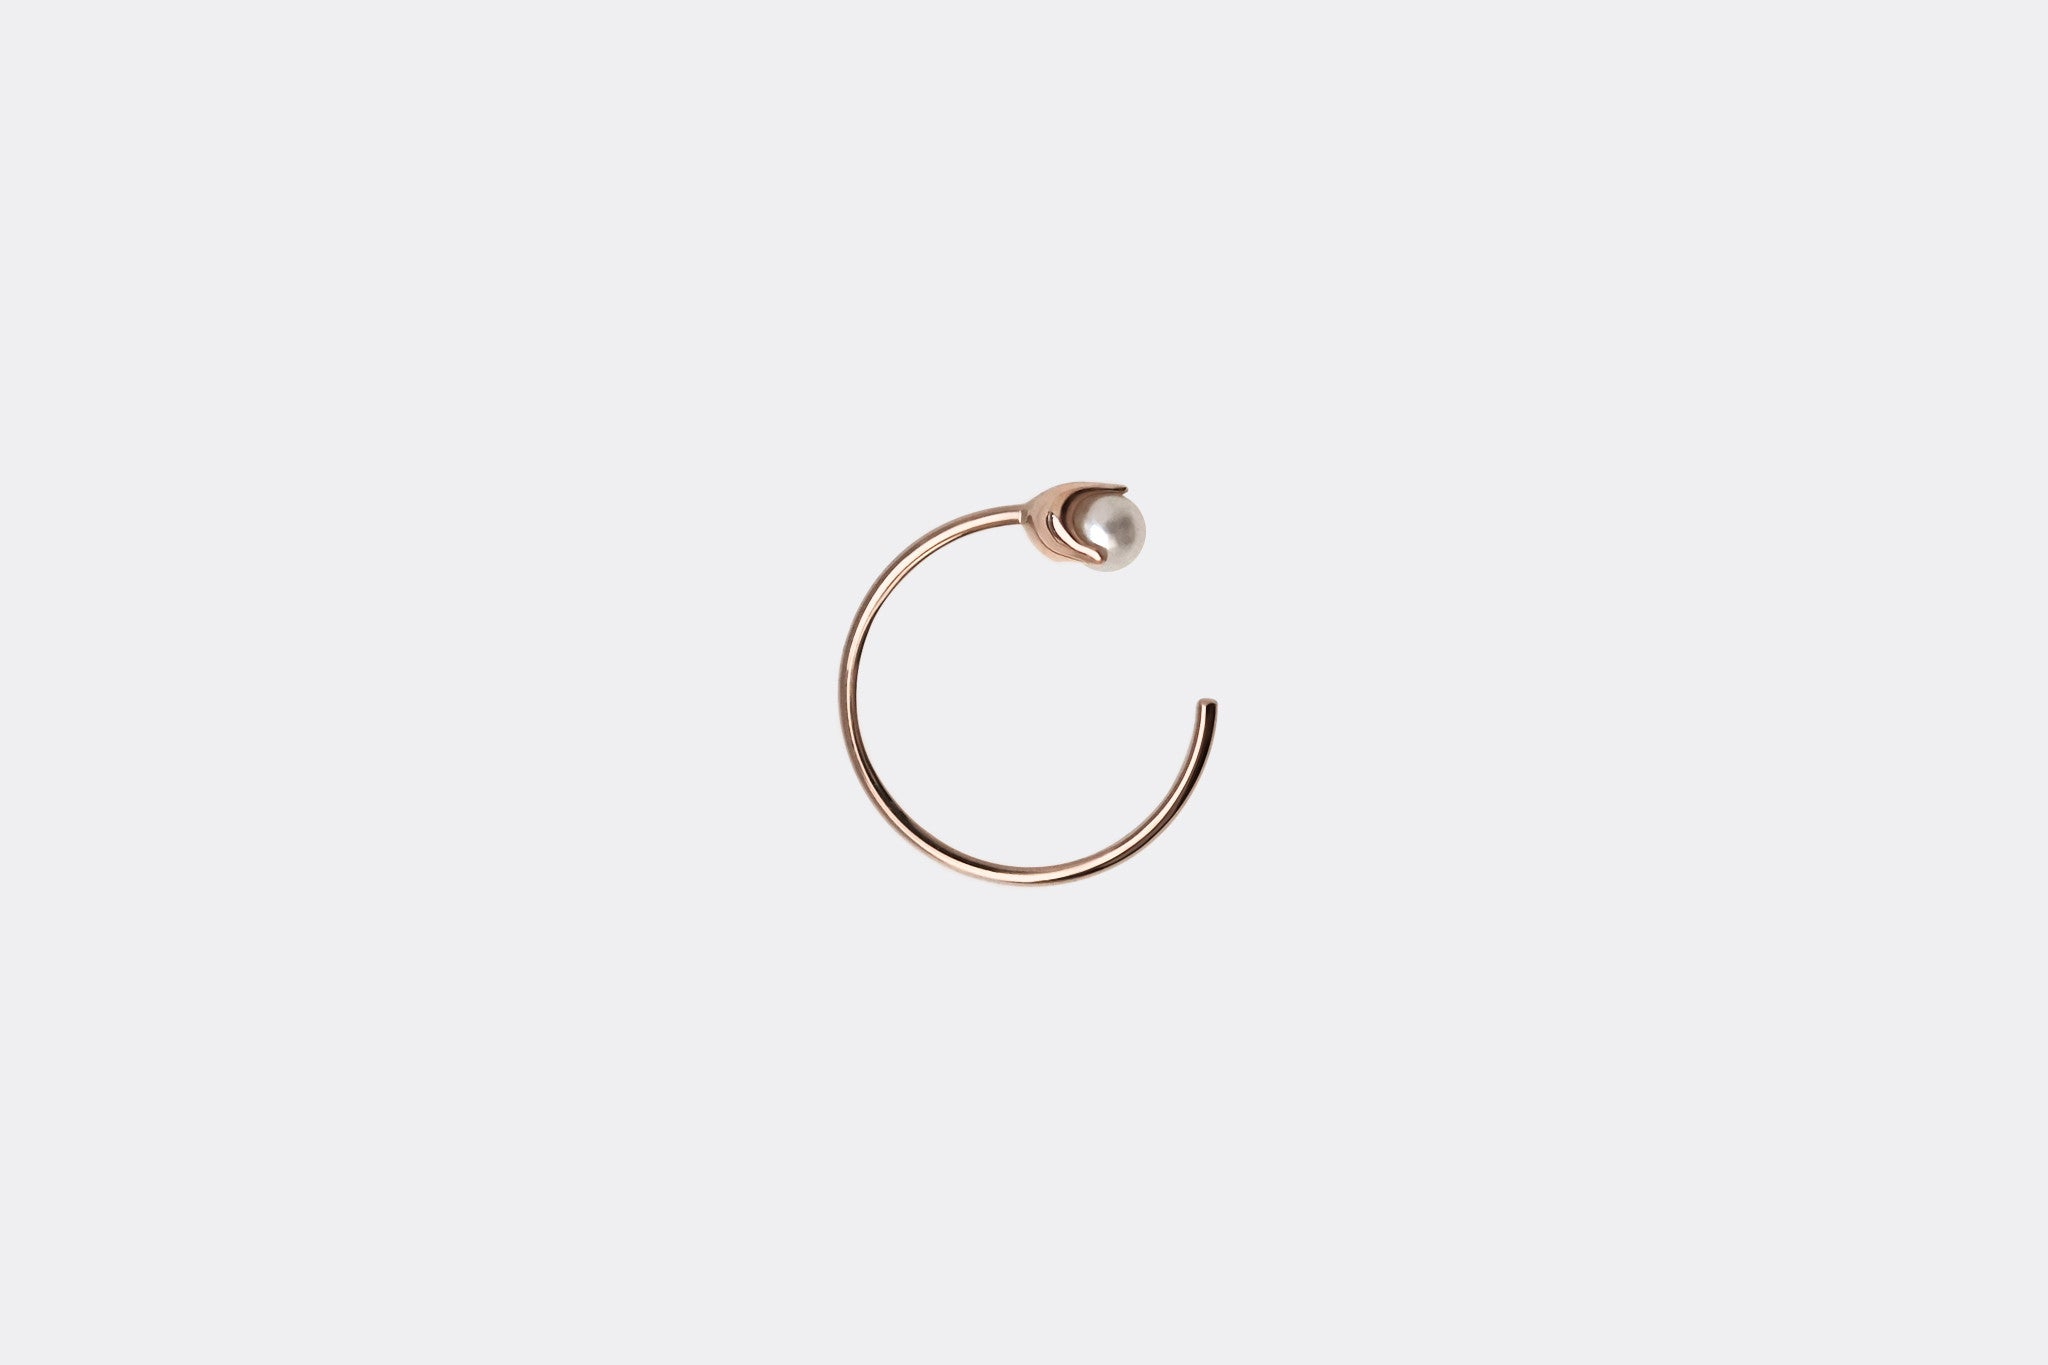 Rose gold Tiny Pearl Hoop Earrings E2332